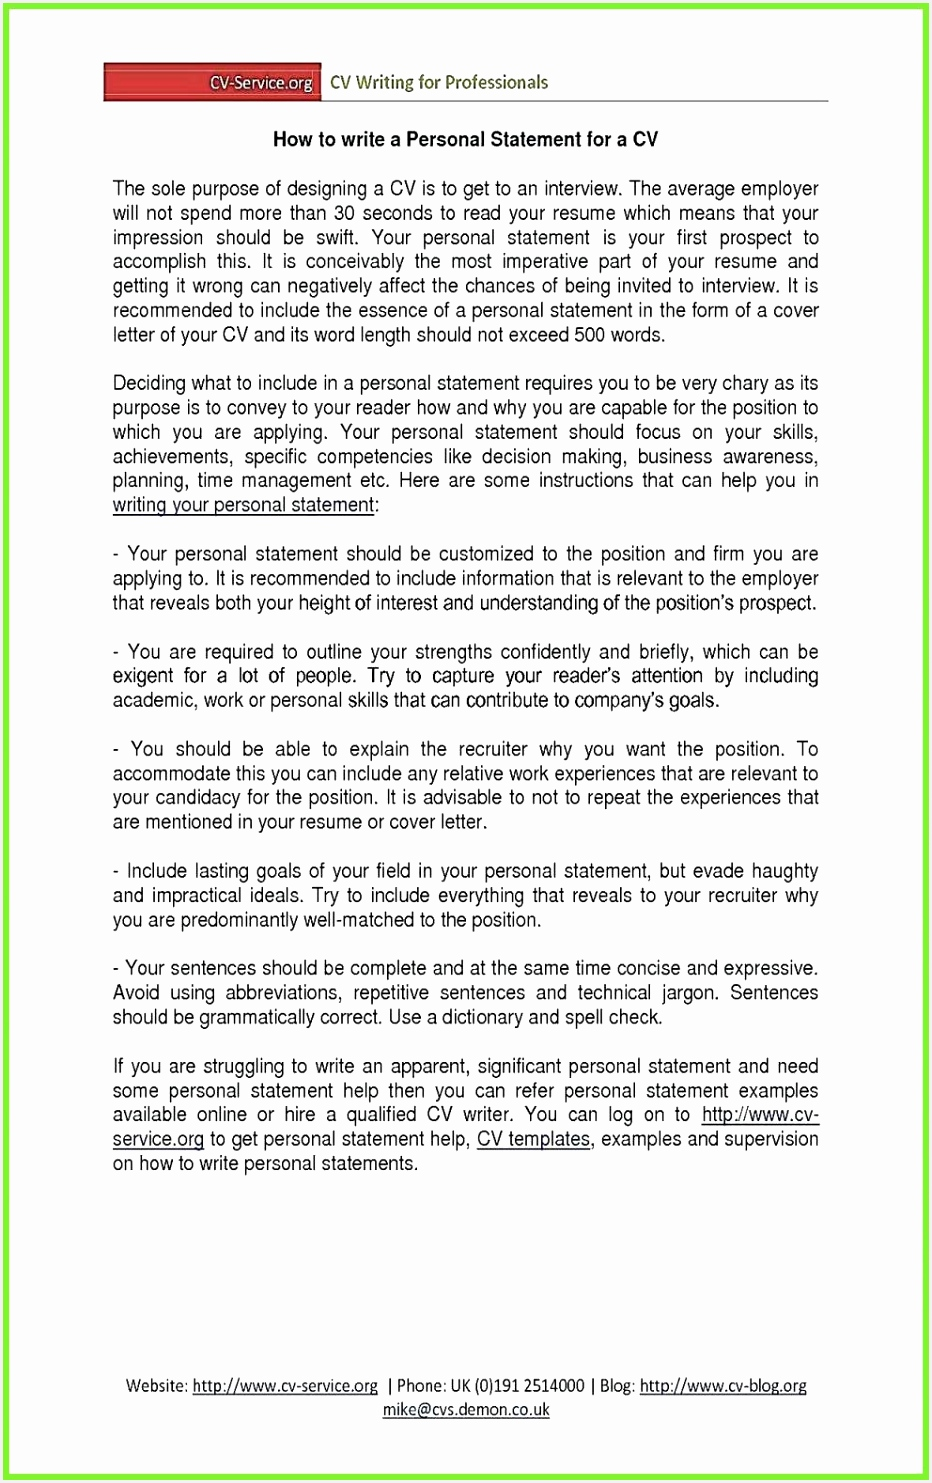 Cv Templates Cool Drftu Lovely Writing Resumes Cover Letters Free Cover Letter Examples for Of 6 Cv Templates Cool